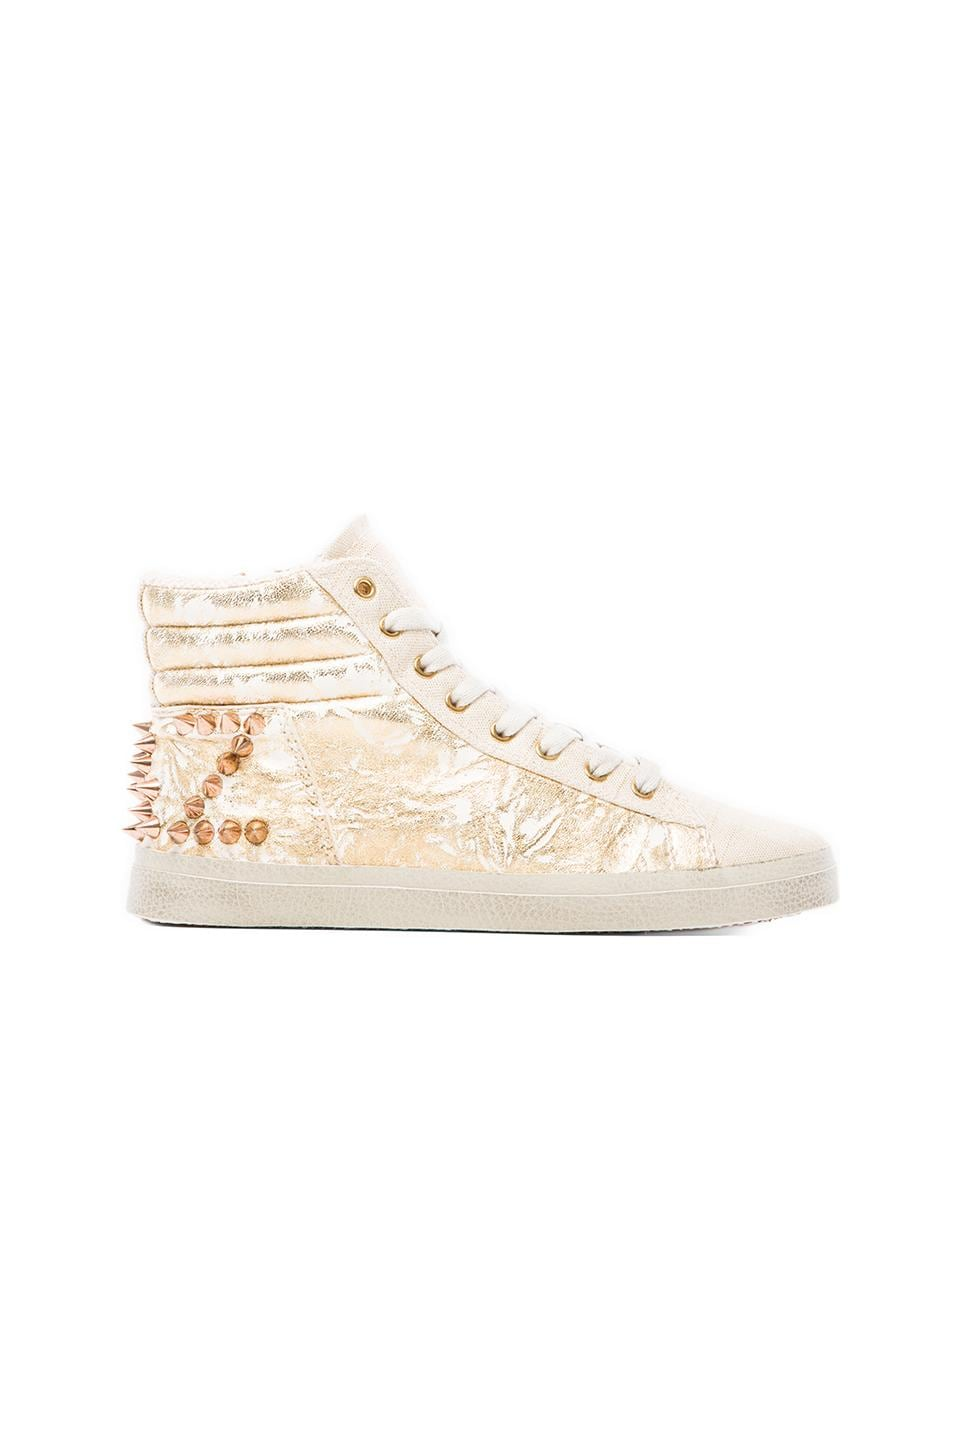 KIM & ZOZI Bling Sneaker in Gold